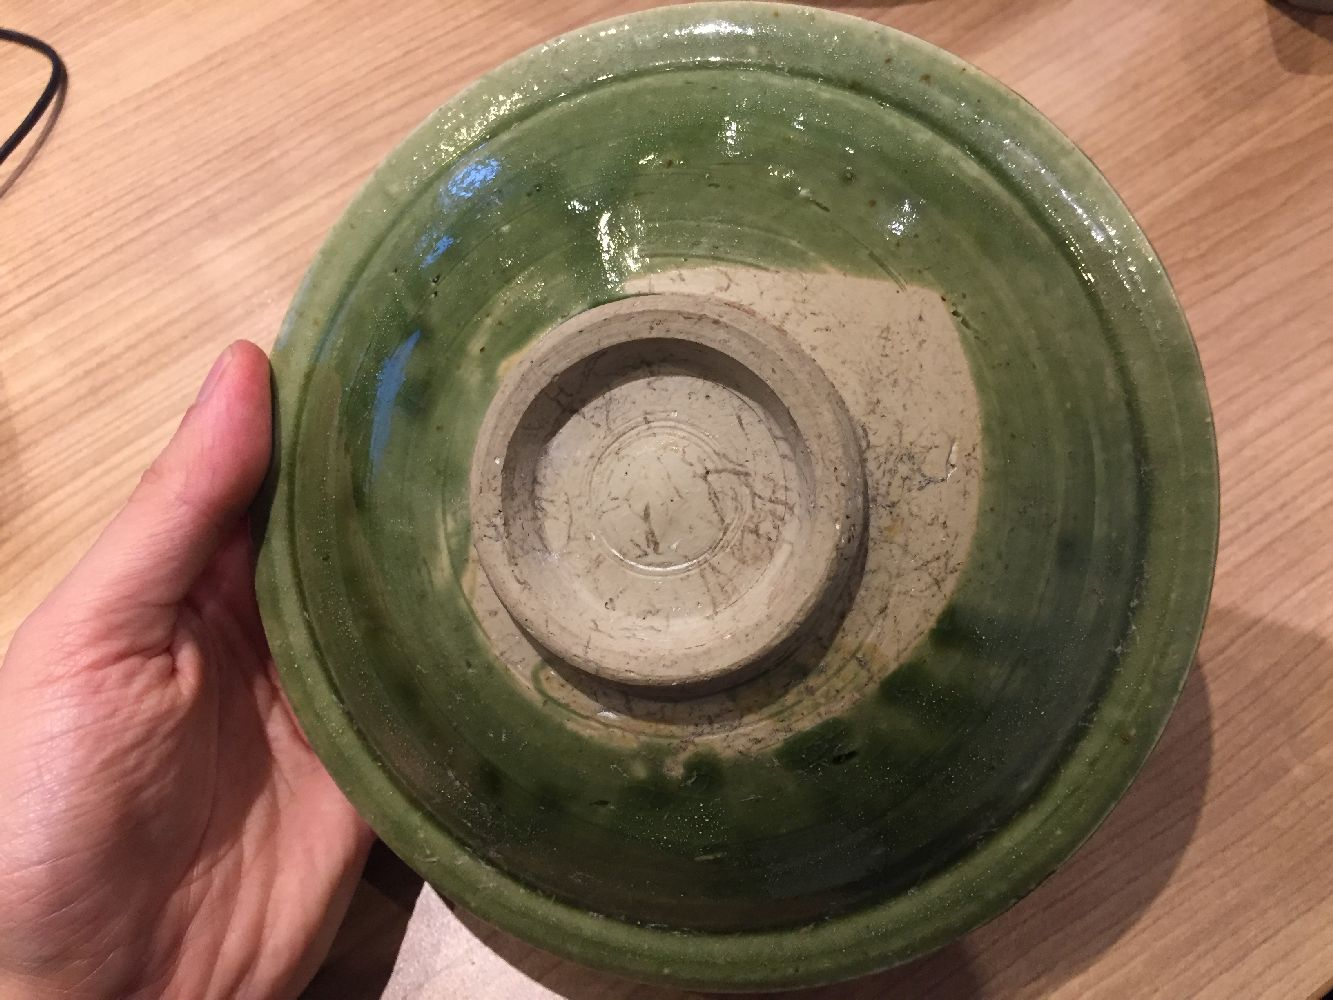 A Vietnamese stoneware green-glazed dish, 14th century, with pinched petal design to the interior - Image 12 of 13